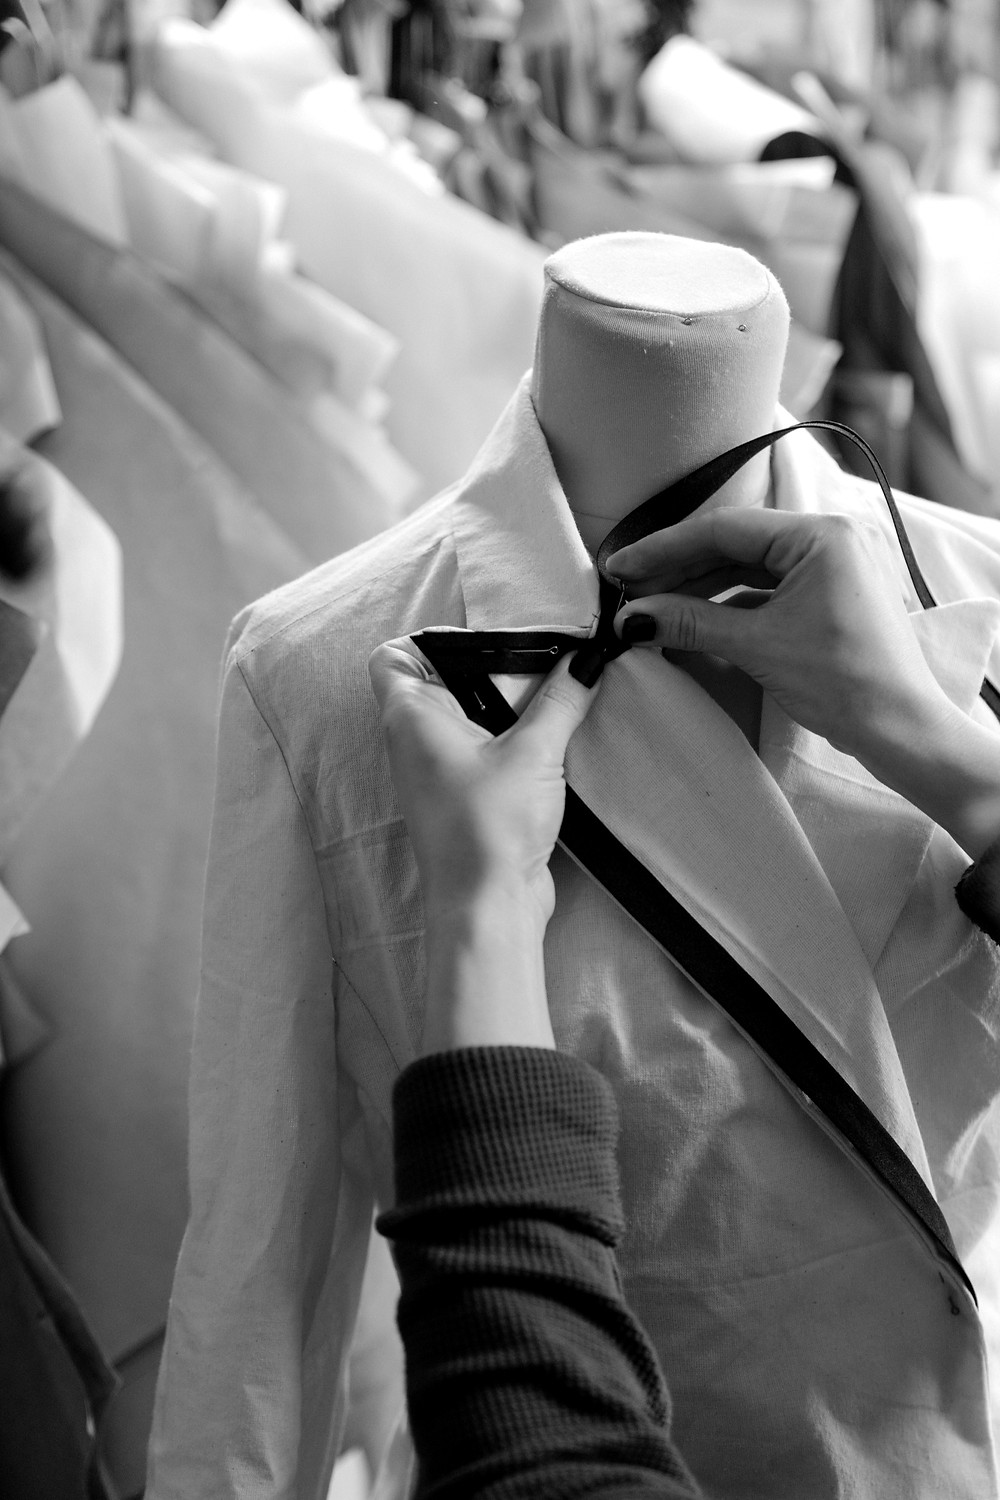 A rail of clothes and a jacket being pinned on a mannequin